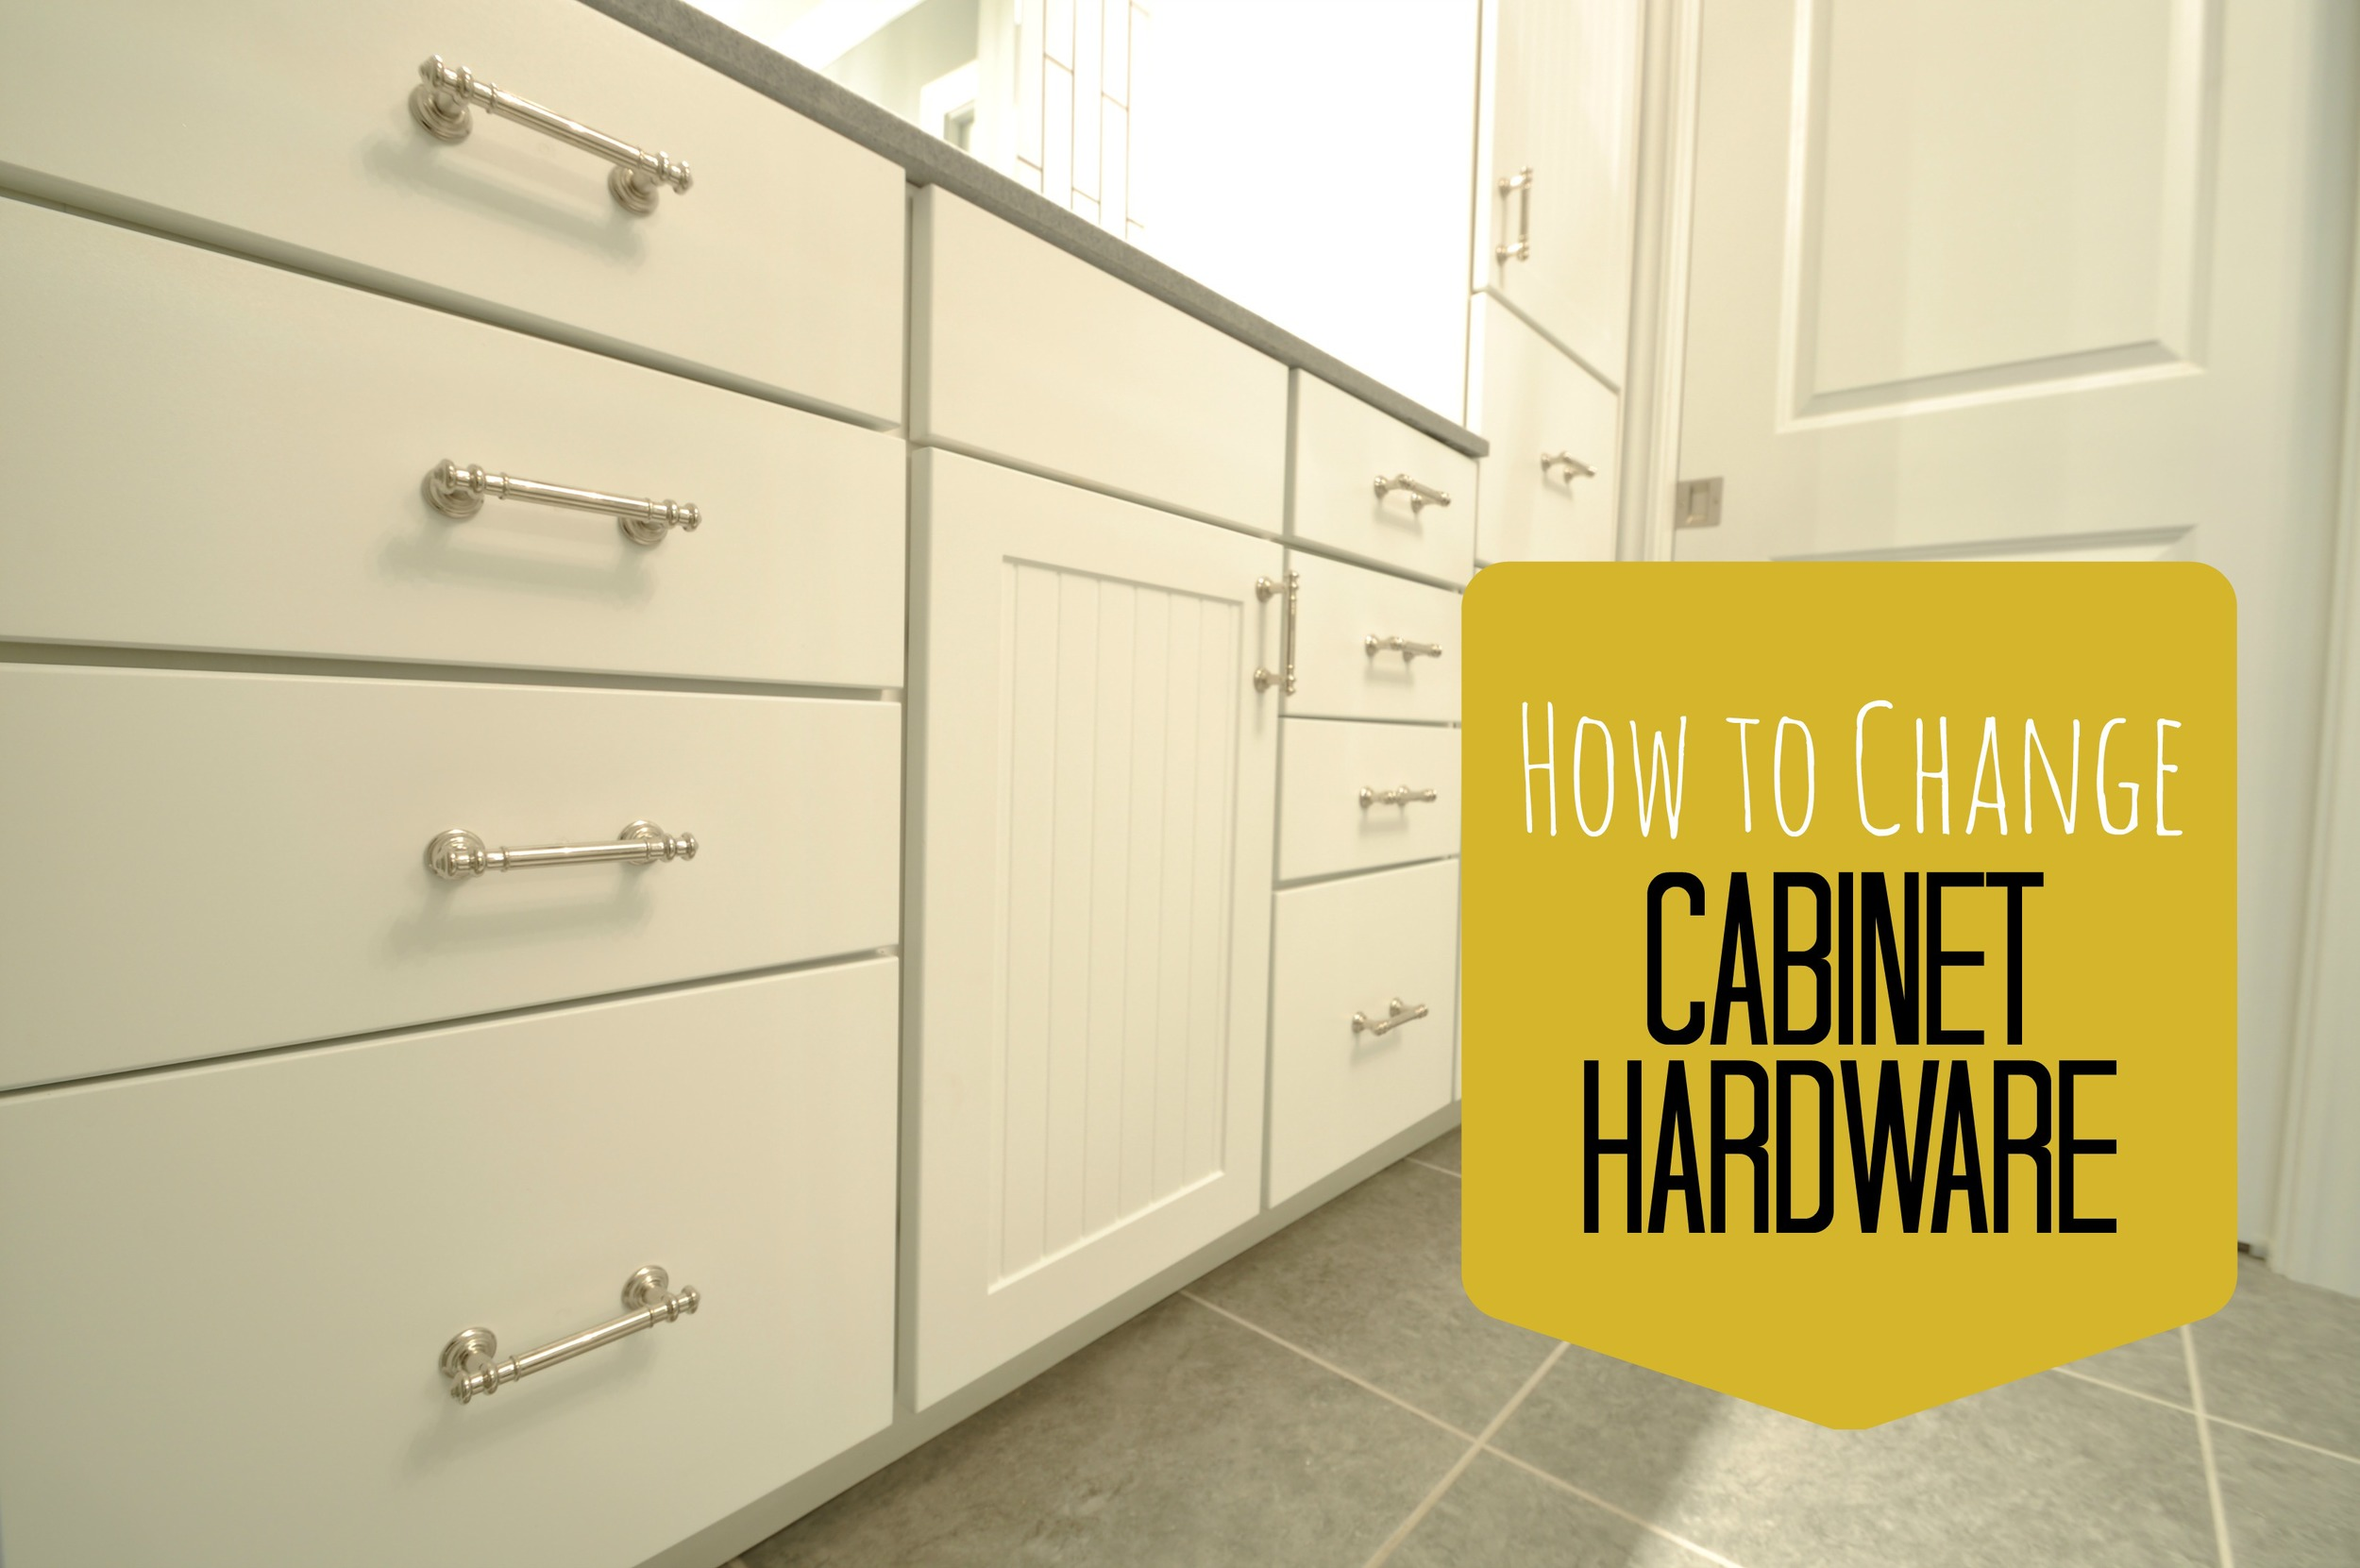 How to Change Cabinet Hardware.jpg